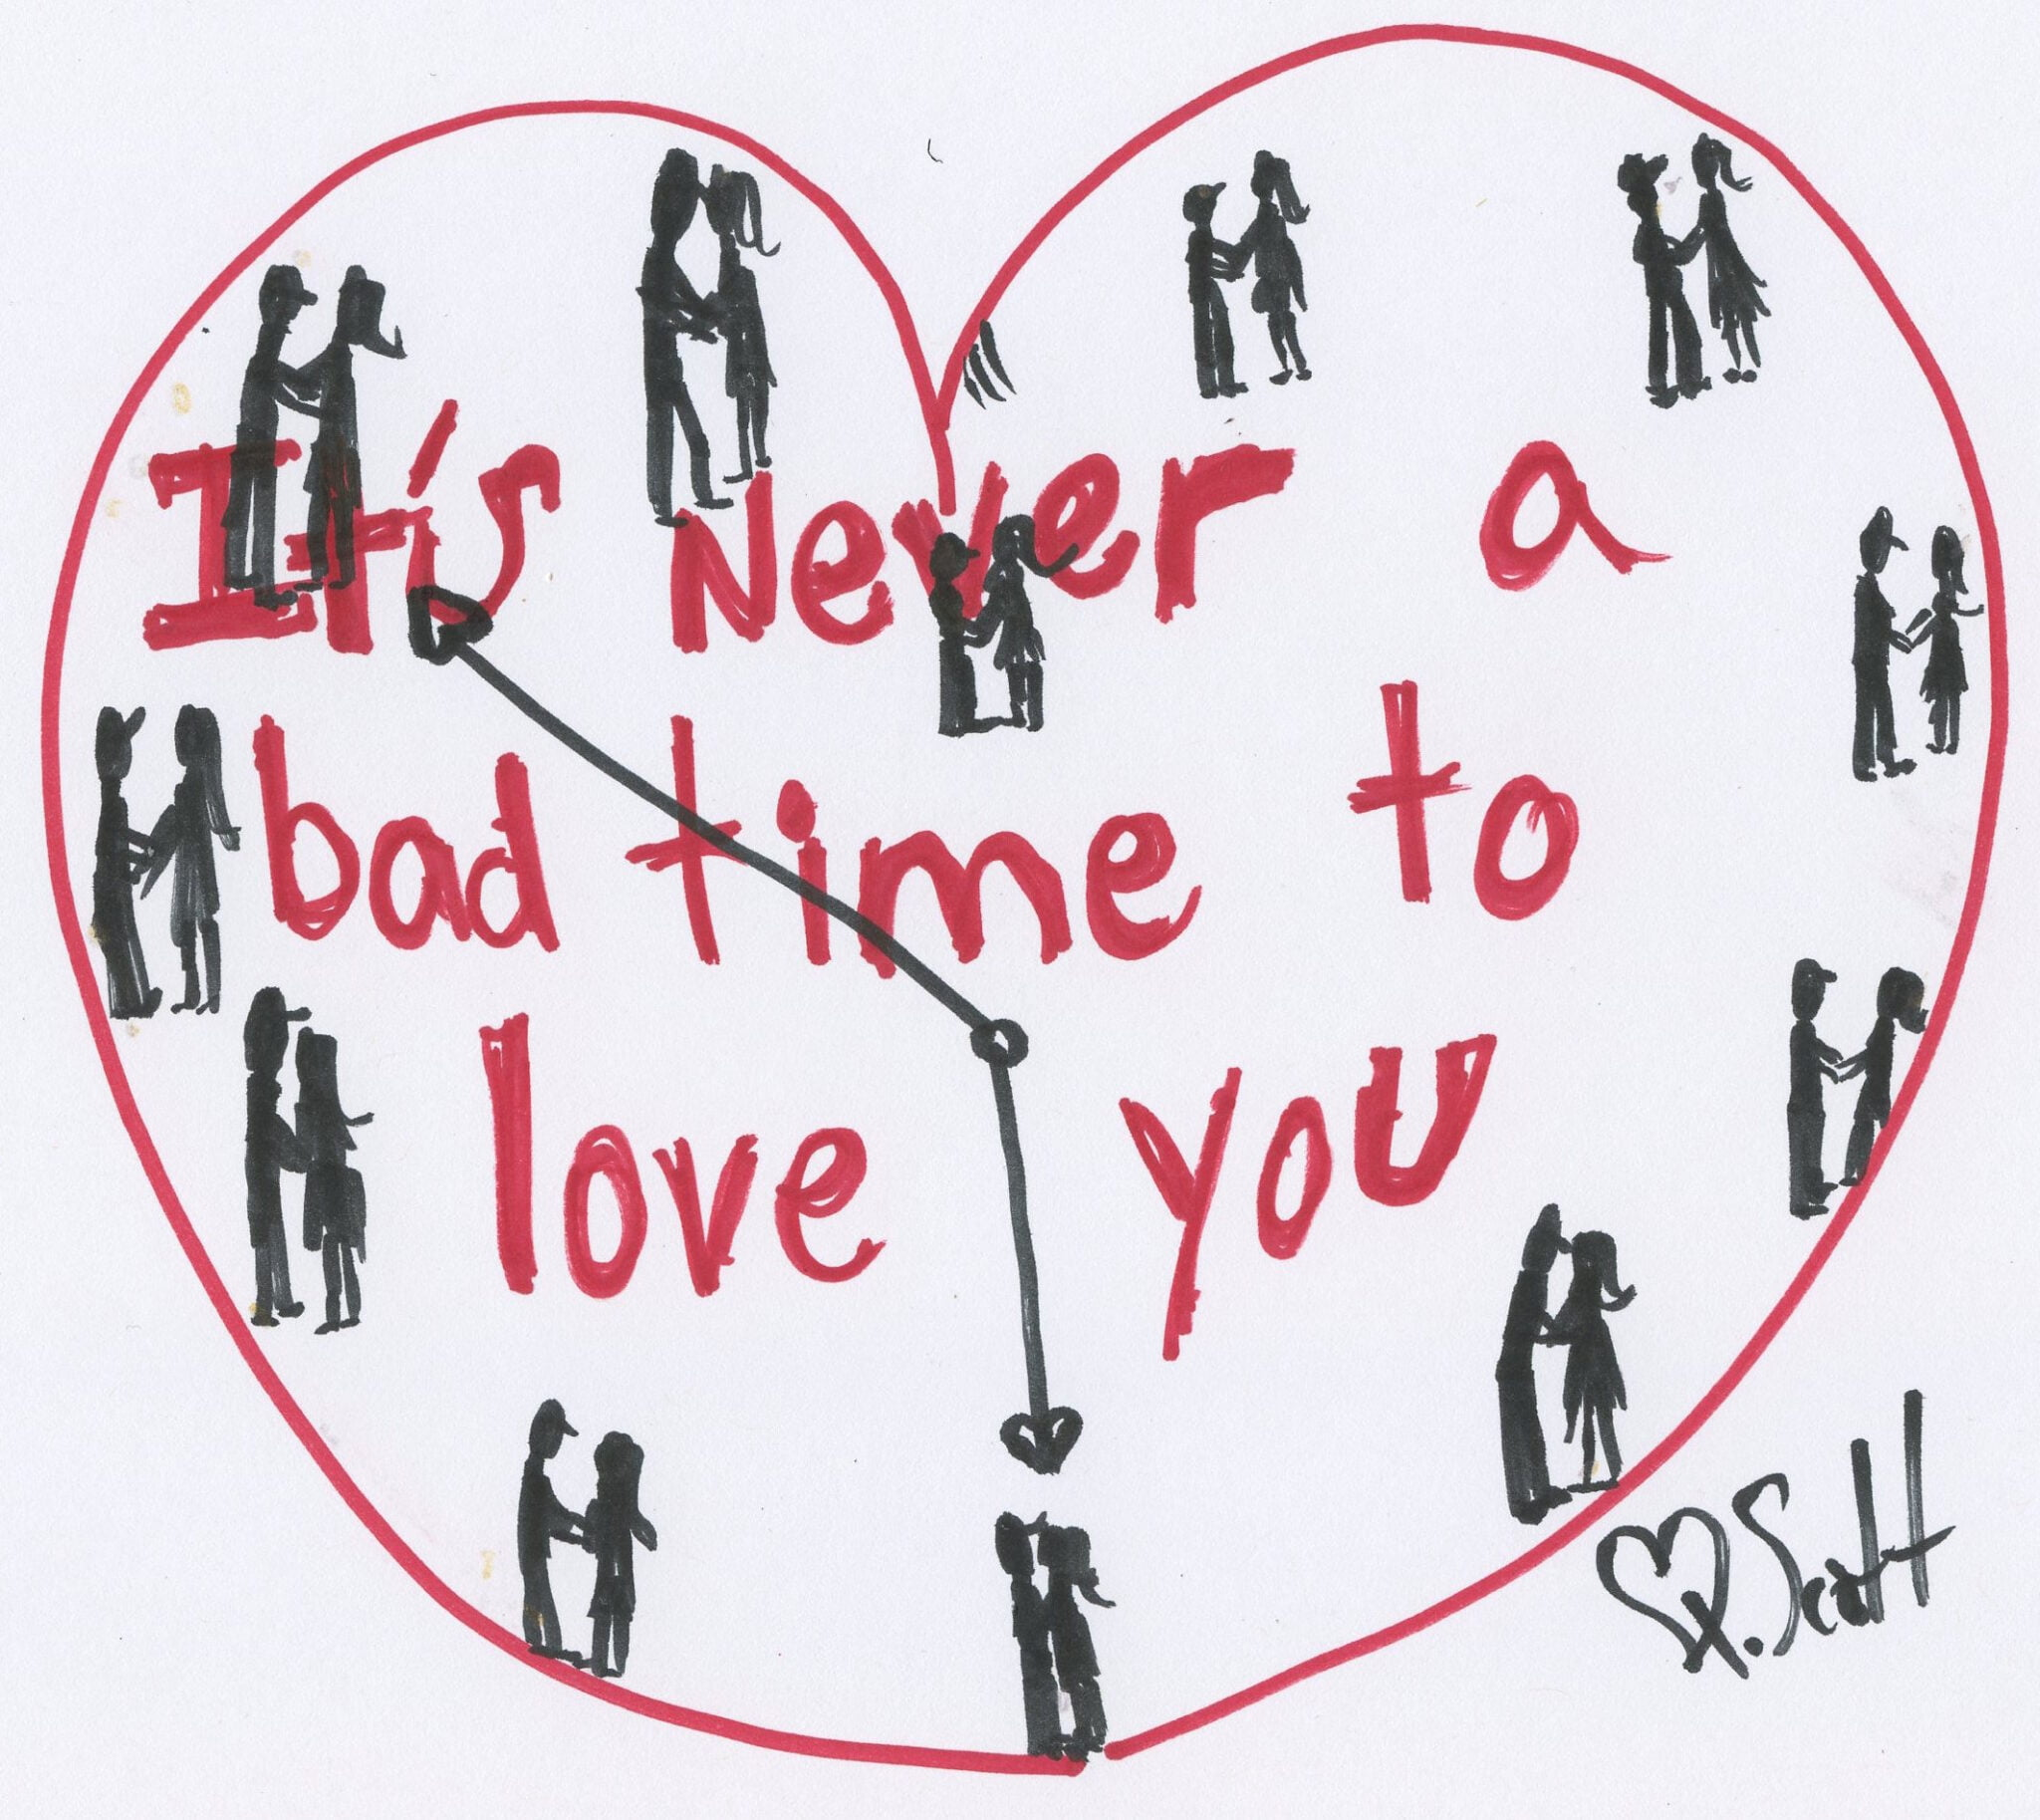 It's never a bad time to love you